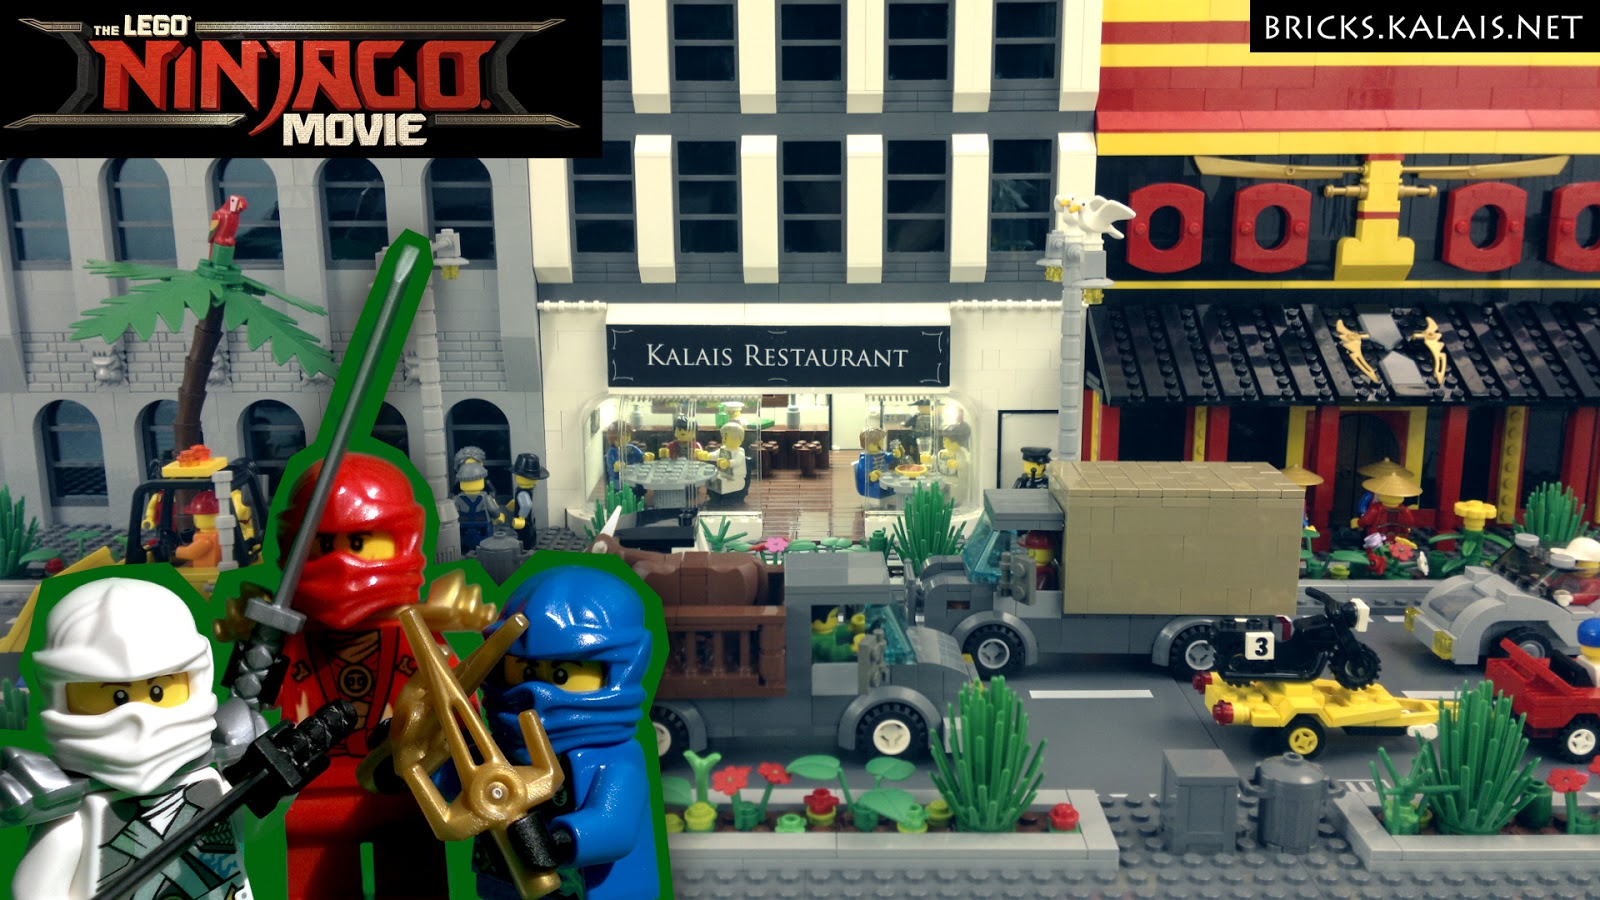 [BRICKFILM] The LEGO Ninjago Movie - Ninja For a Day